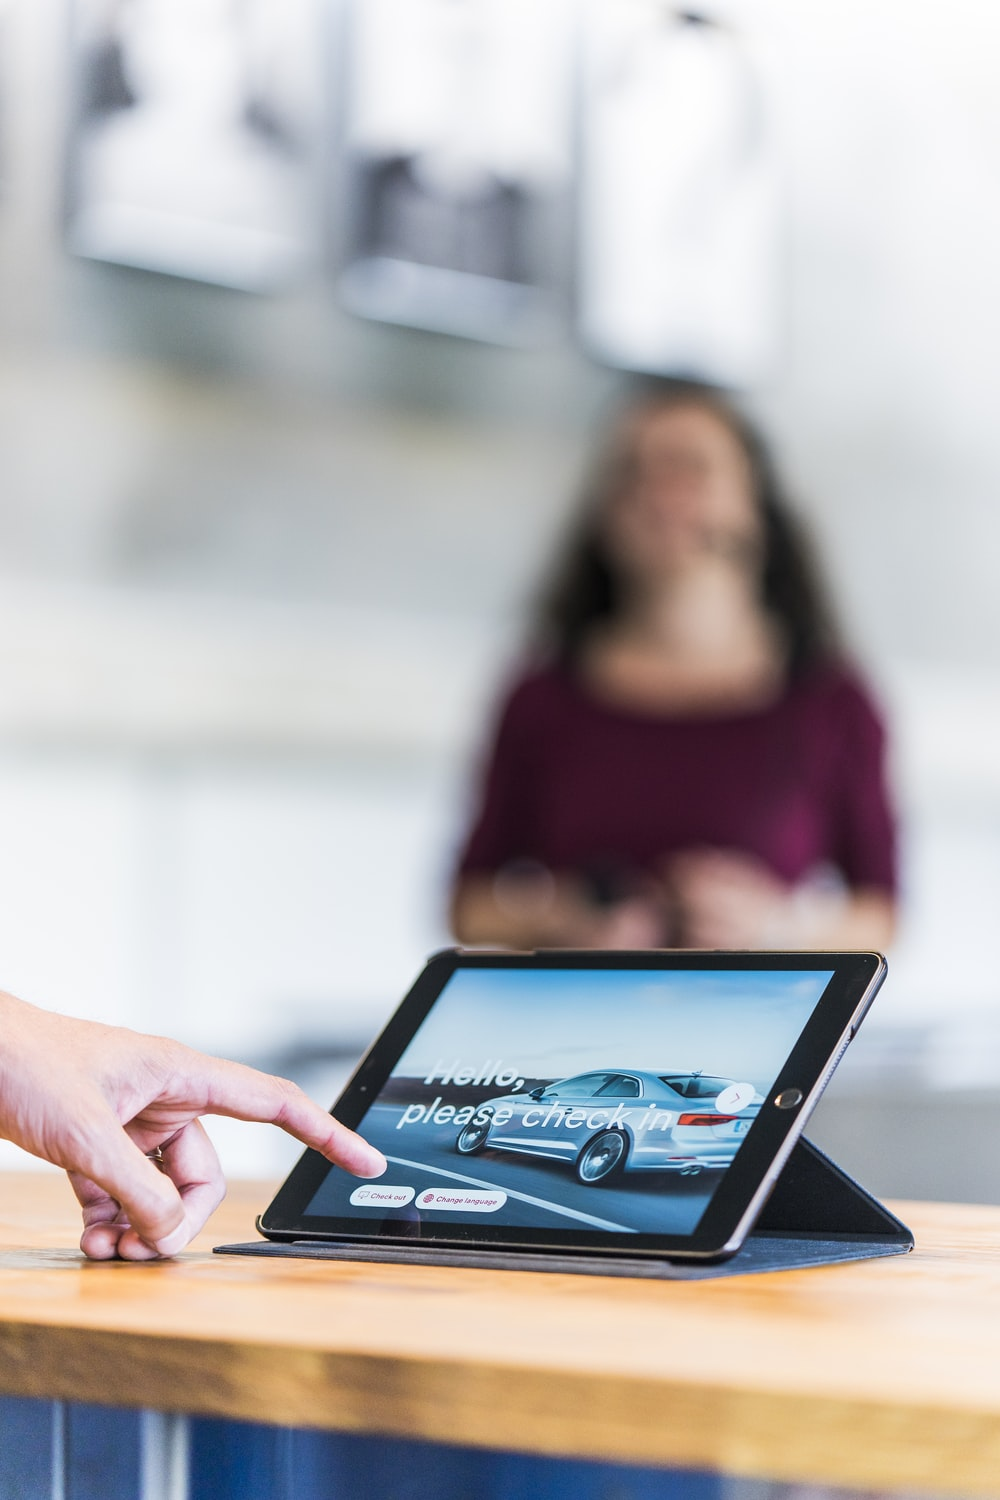 turned-on tablet computer on table